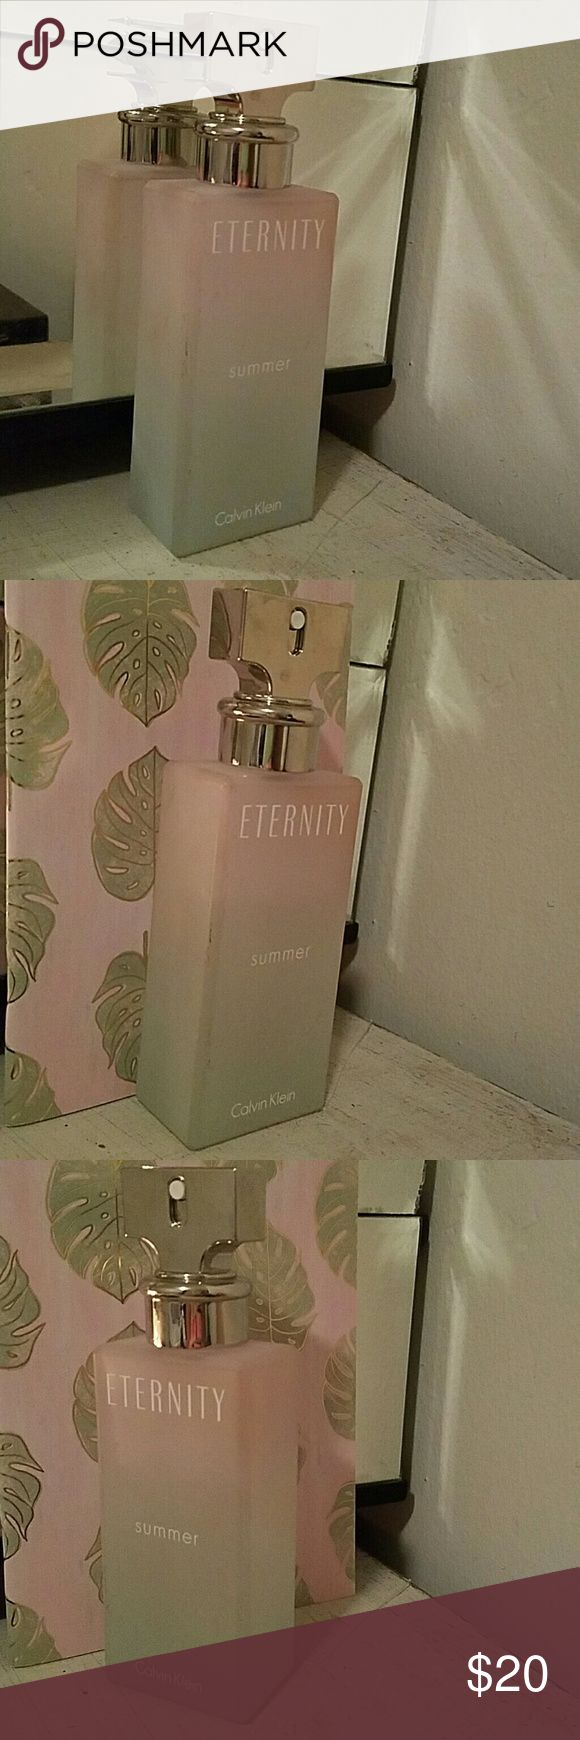 Calvin Klein Eternity Summer Perfume 3.4 Oz with 3/4 full. Limited edition from Ultra and no longer available. Smells light and floral. Nice clean spring or summer scent. Selling because I wear my chanel everyday and am trying to minimalize. Other